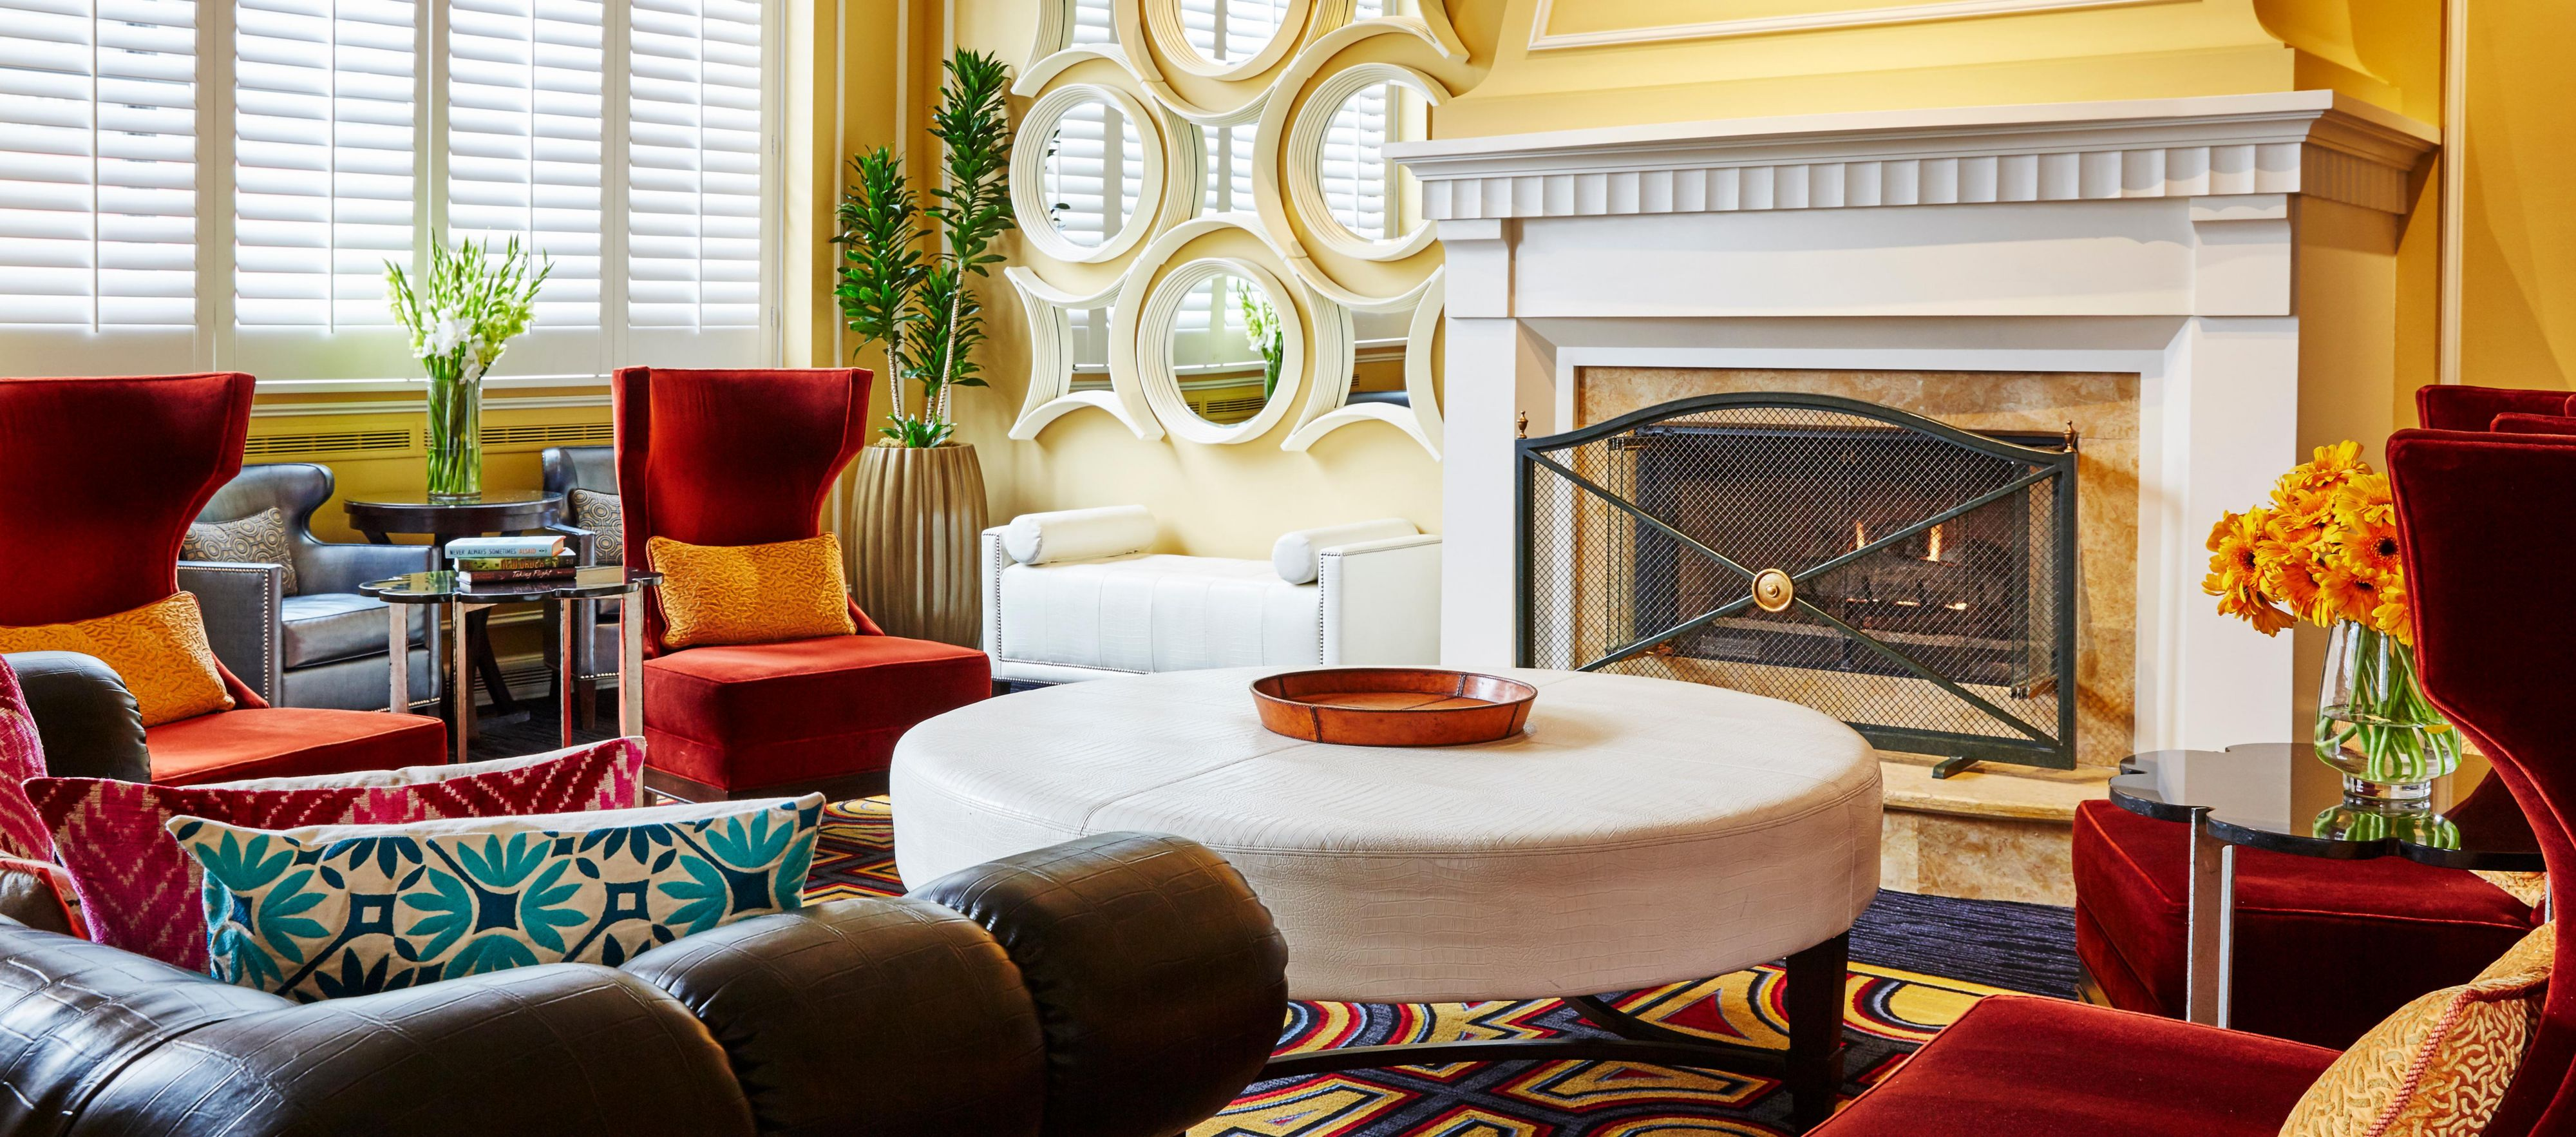 Save Up to 30 Percent Off Room Rates: City Lights Sale 2019 With Kimpton